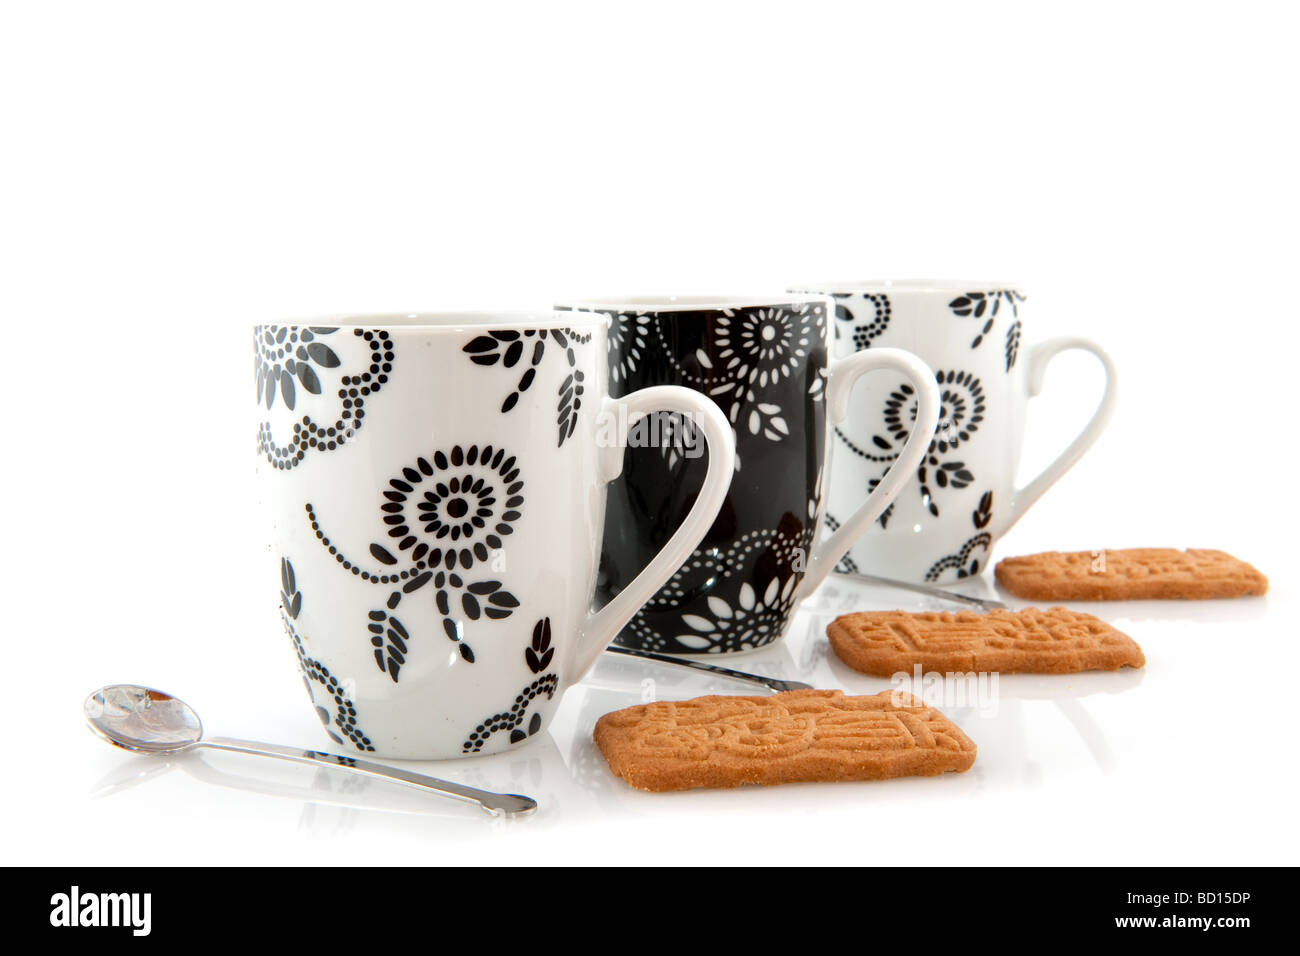 black and white coffee mugs with cookies and spoons - Stock Image